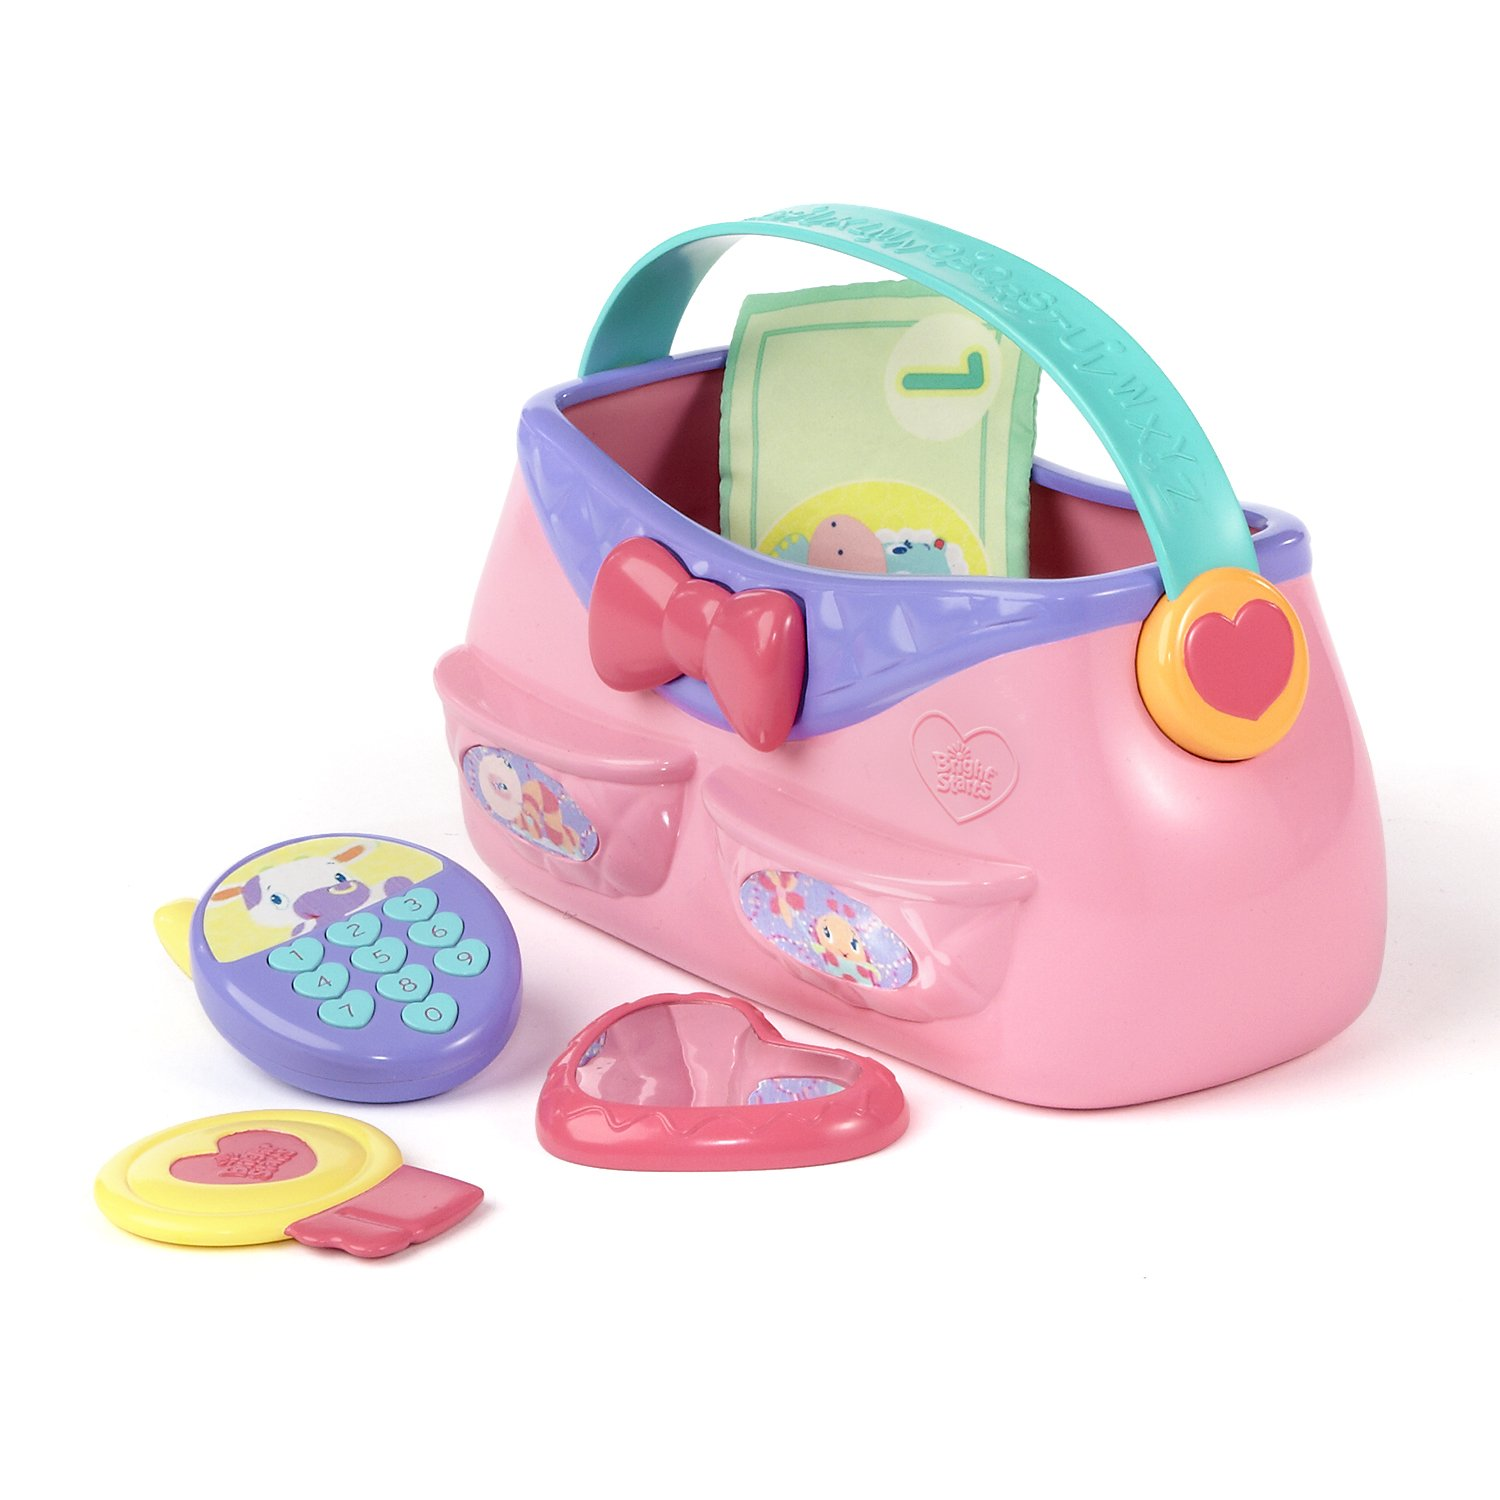 Bright Starts Pretty in Pink Put and Take Purse by Bright Starts (Image #2)